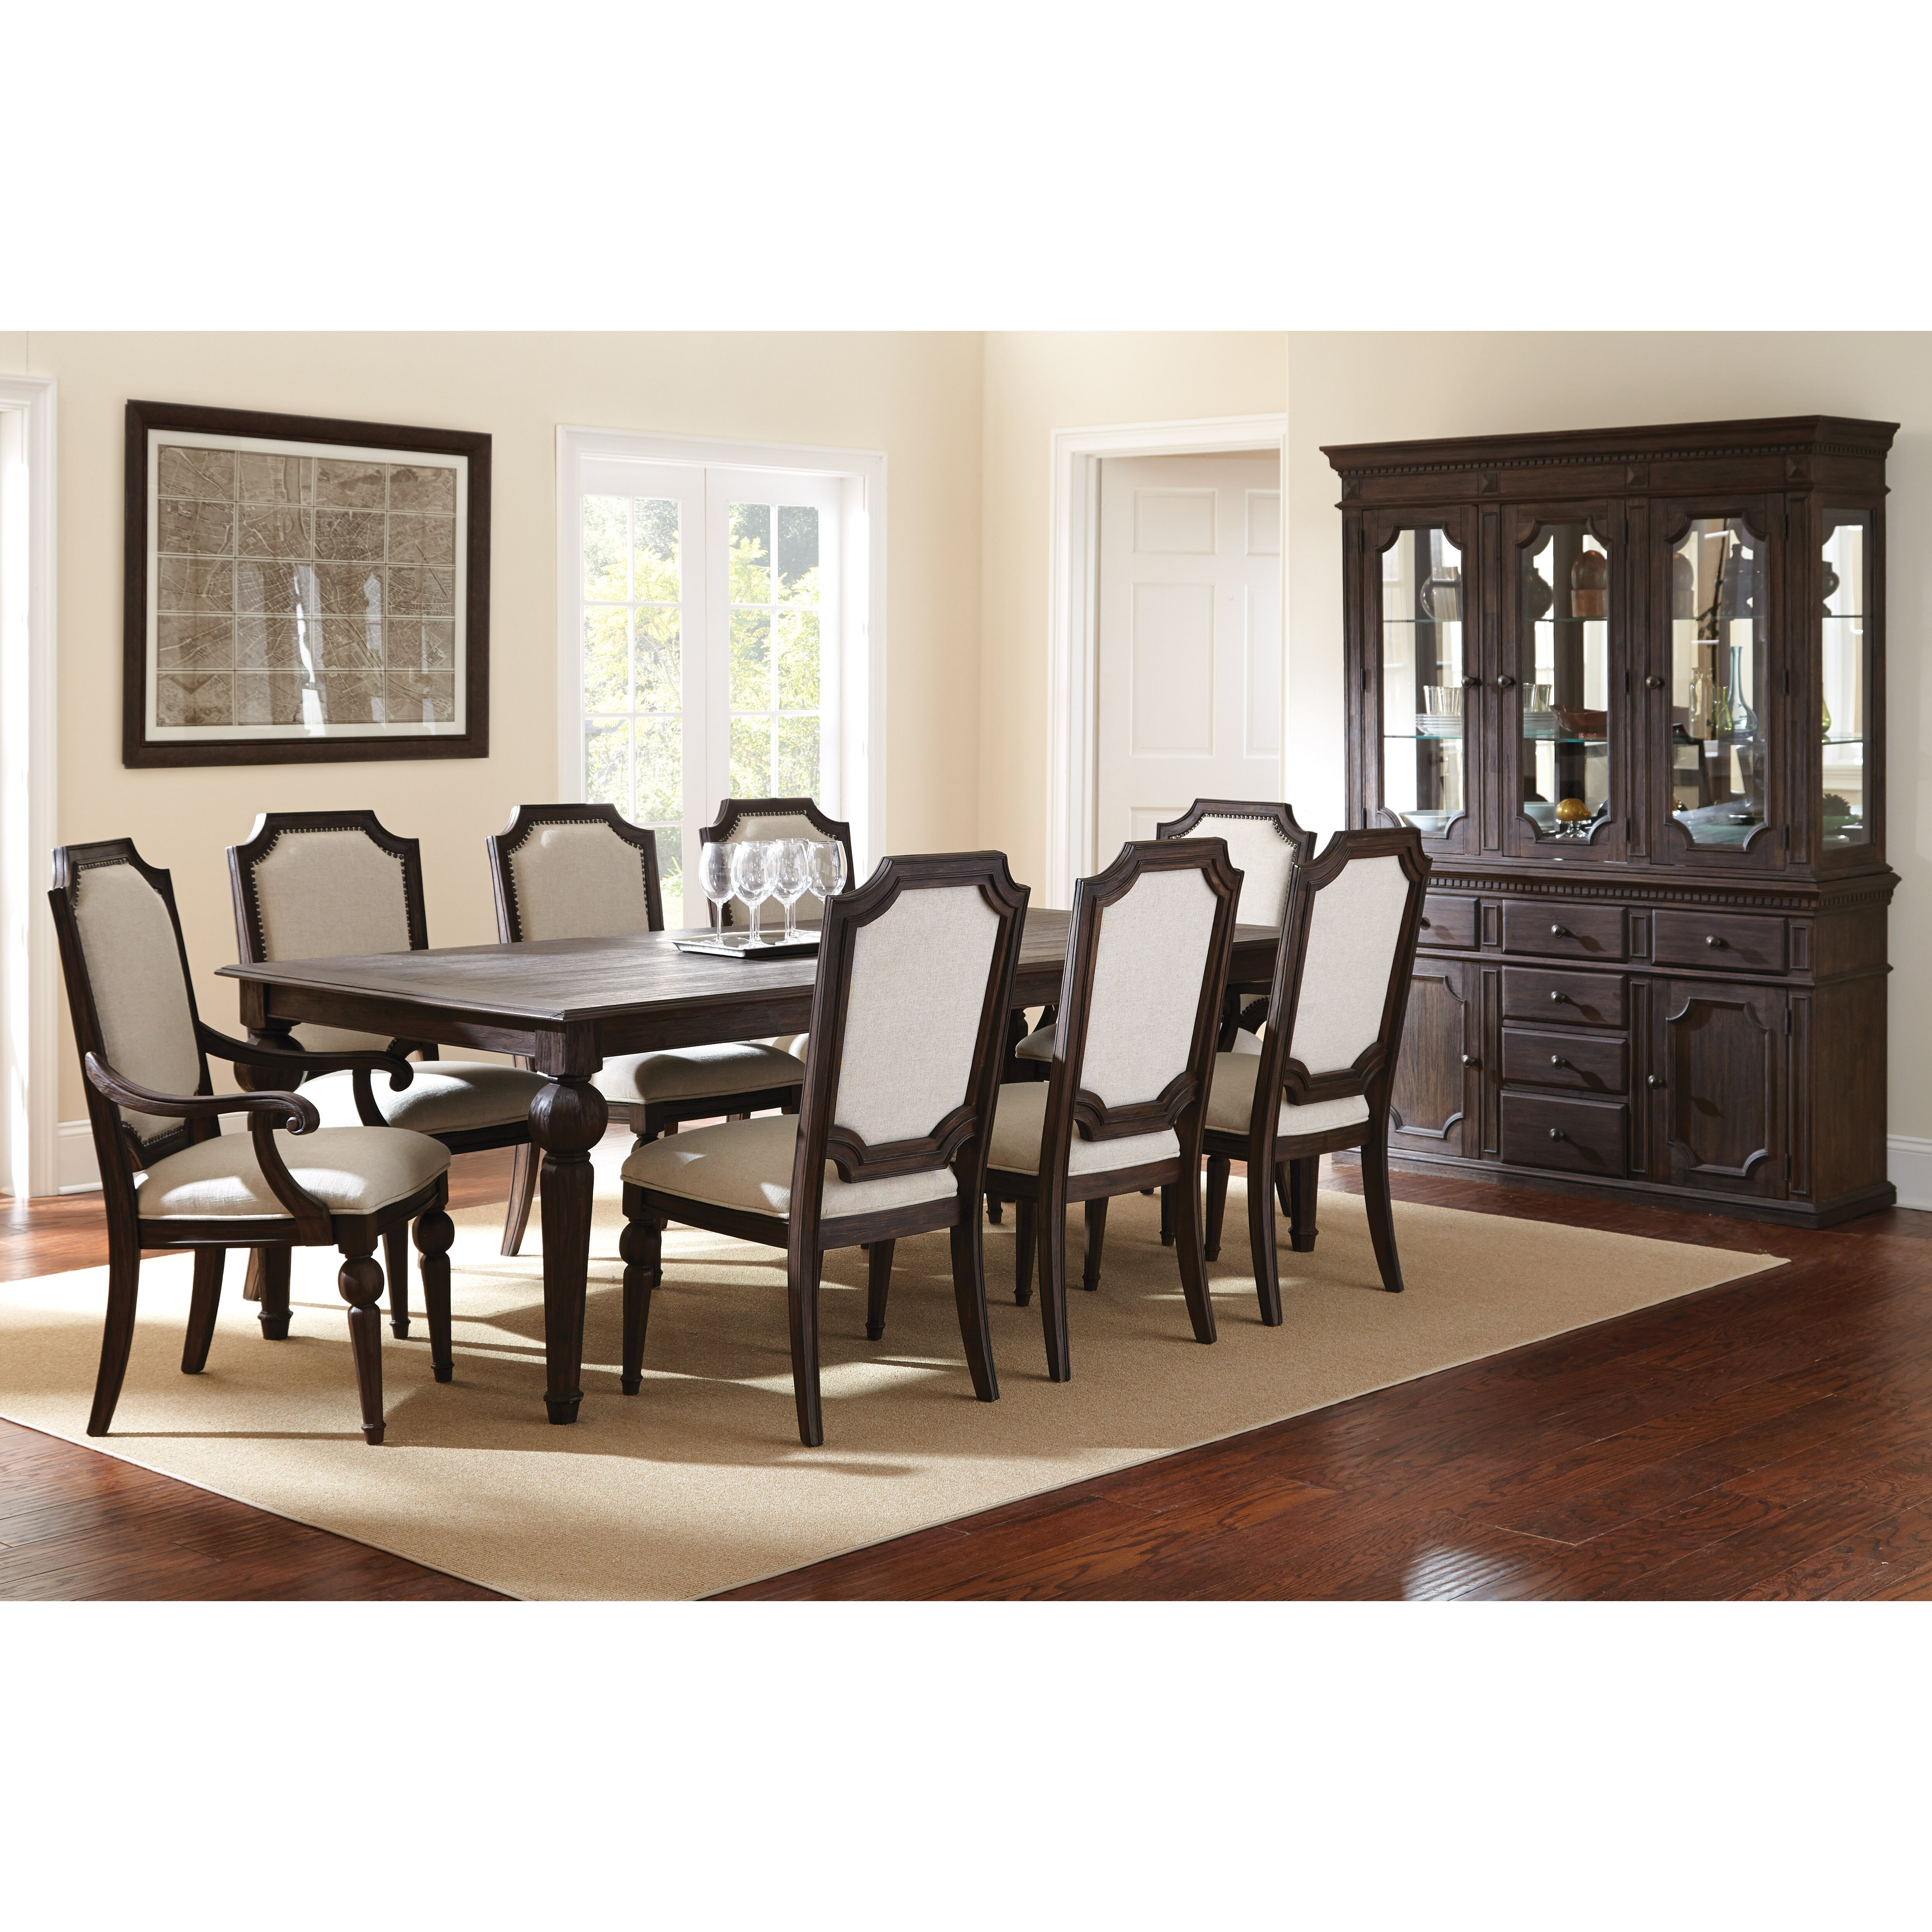 11 Piece Dining Room Set Rectangular 11 Piece Kitchen Amp Dining Room Sets You39ll Love Wayfair